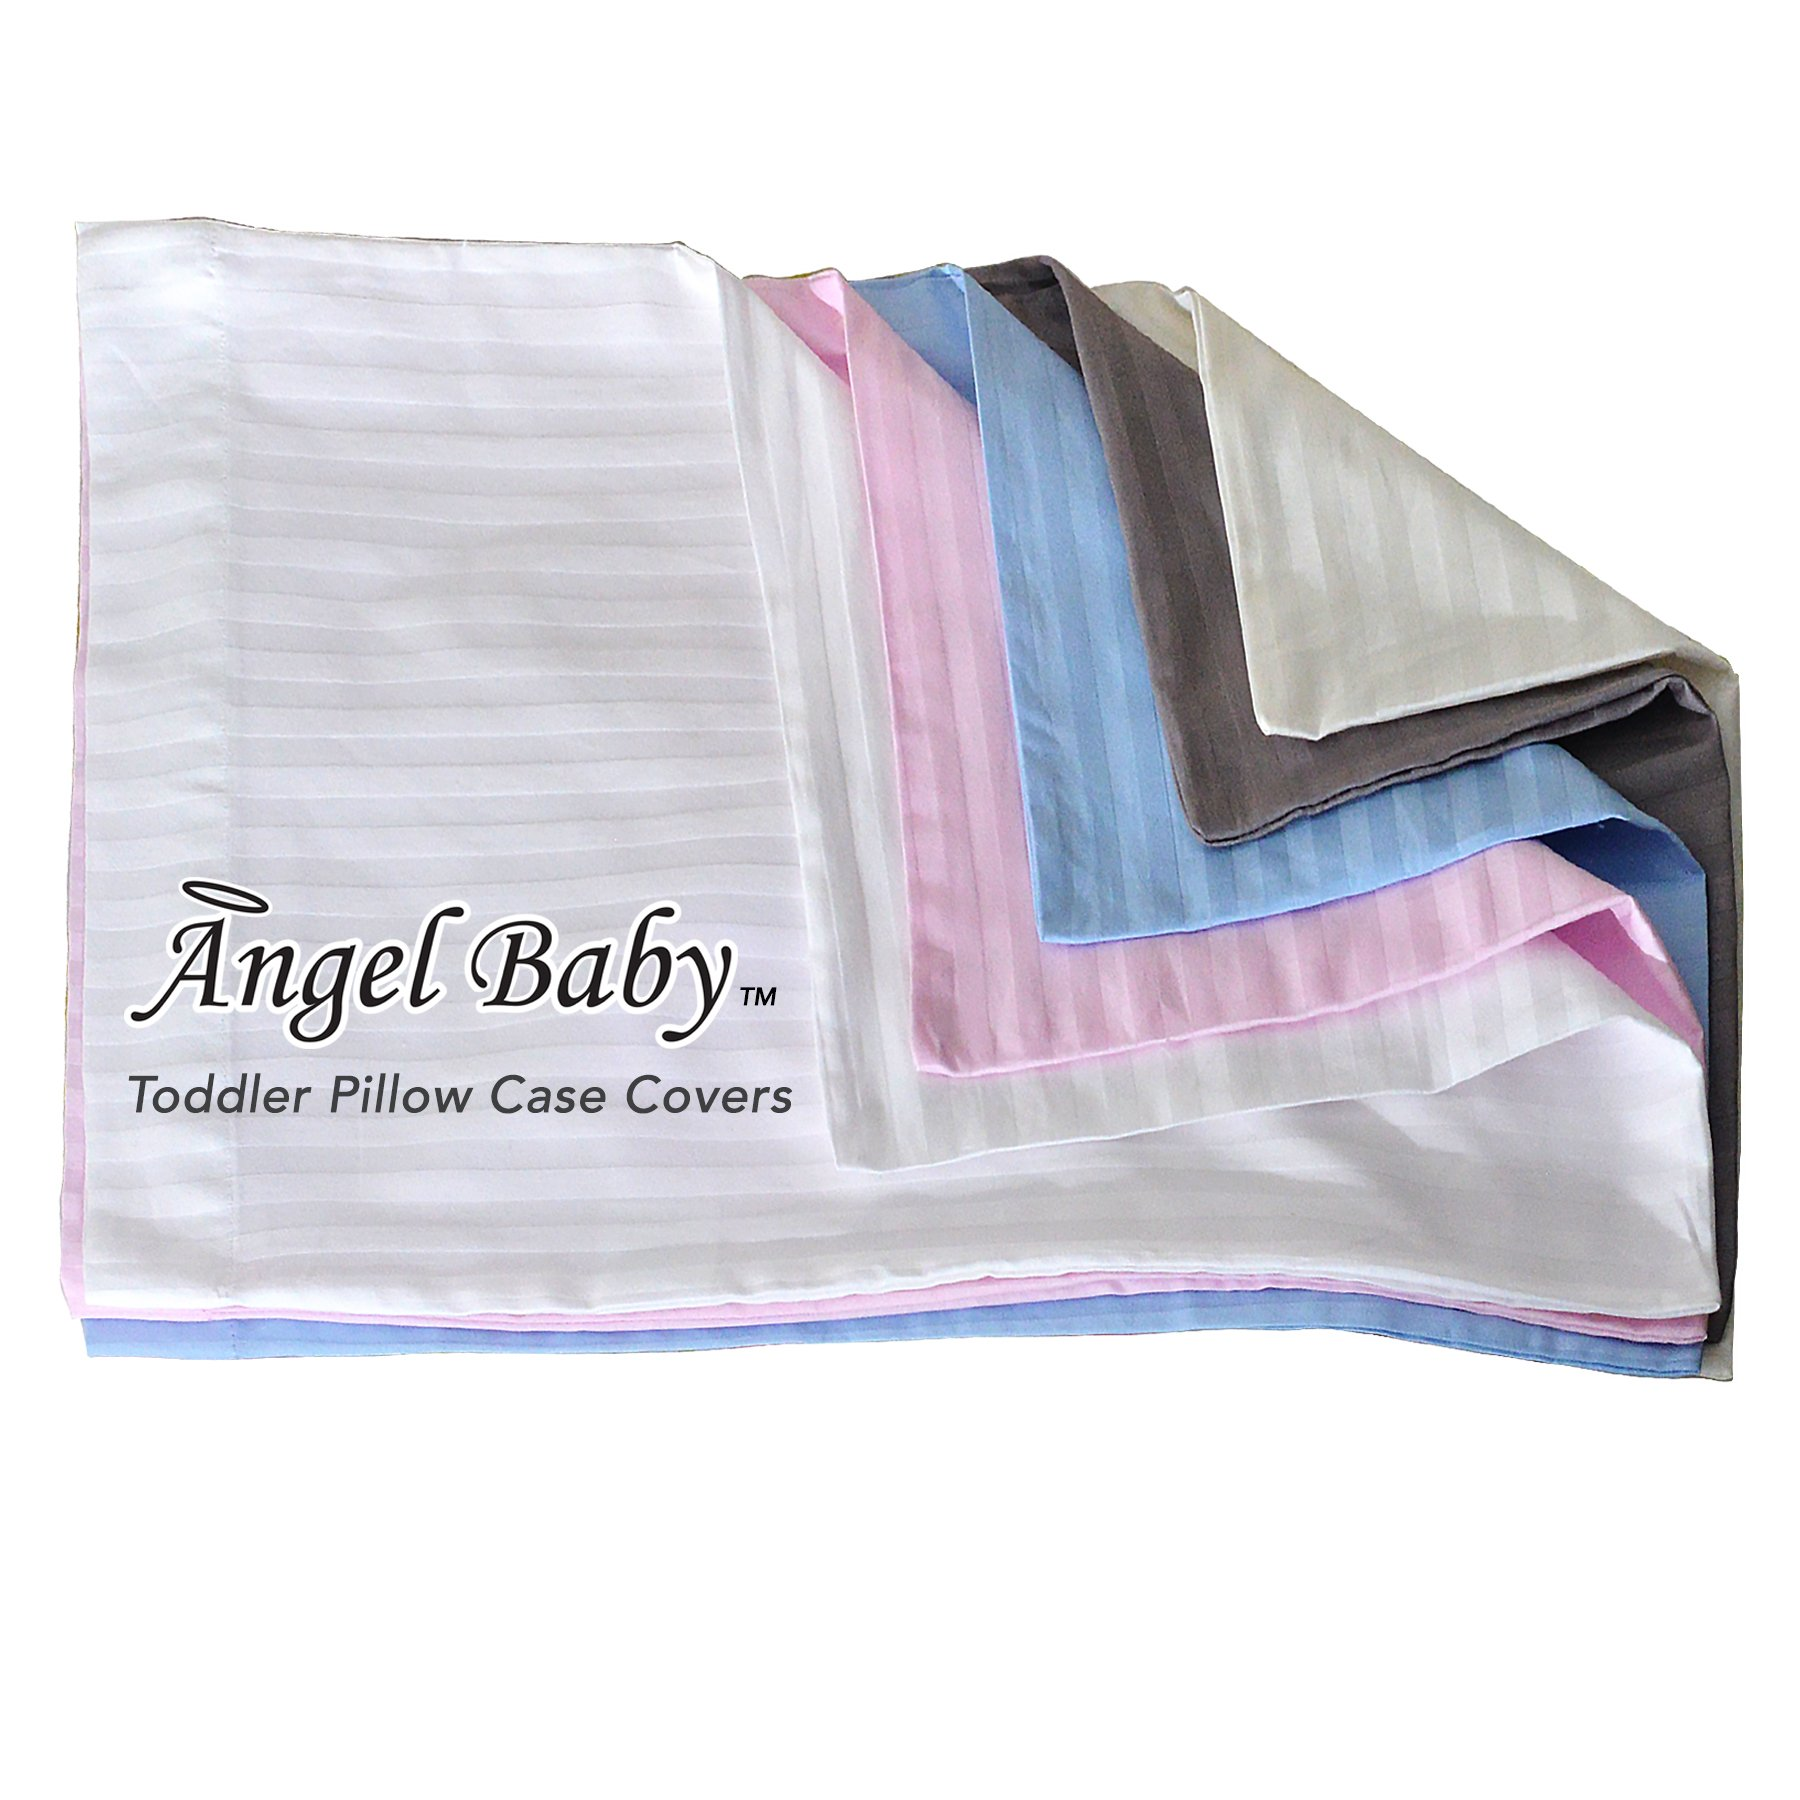 Angel Baby Toddler Pillow Case Cover - WHITE, 100% NATURAL Cotton Percale, 400 Thread Count Sateen Weave, Machine Washable, Tumble Dry - for Kids Bedding - (14'' x 20.5'')